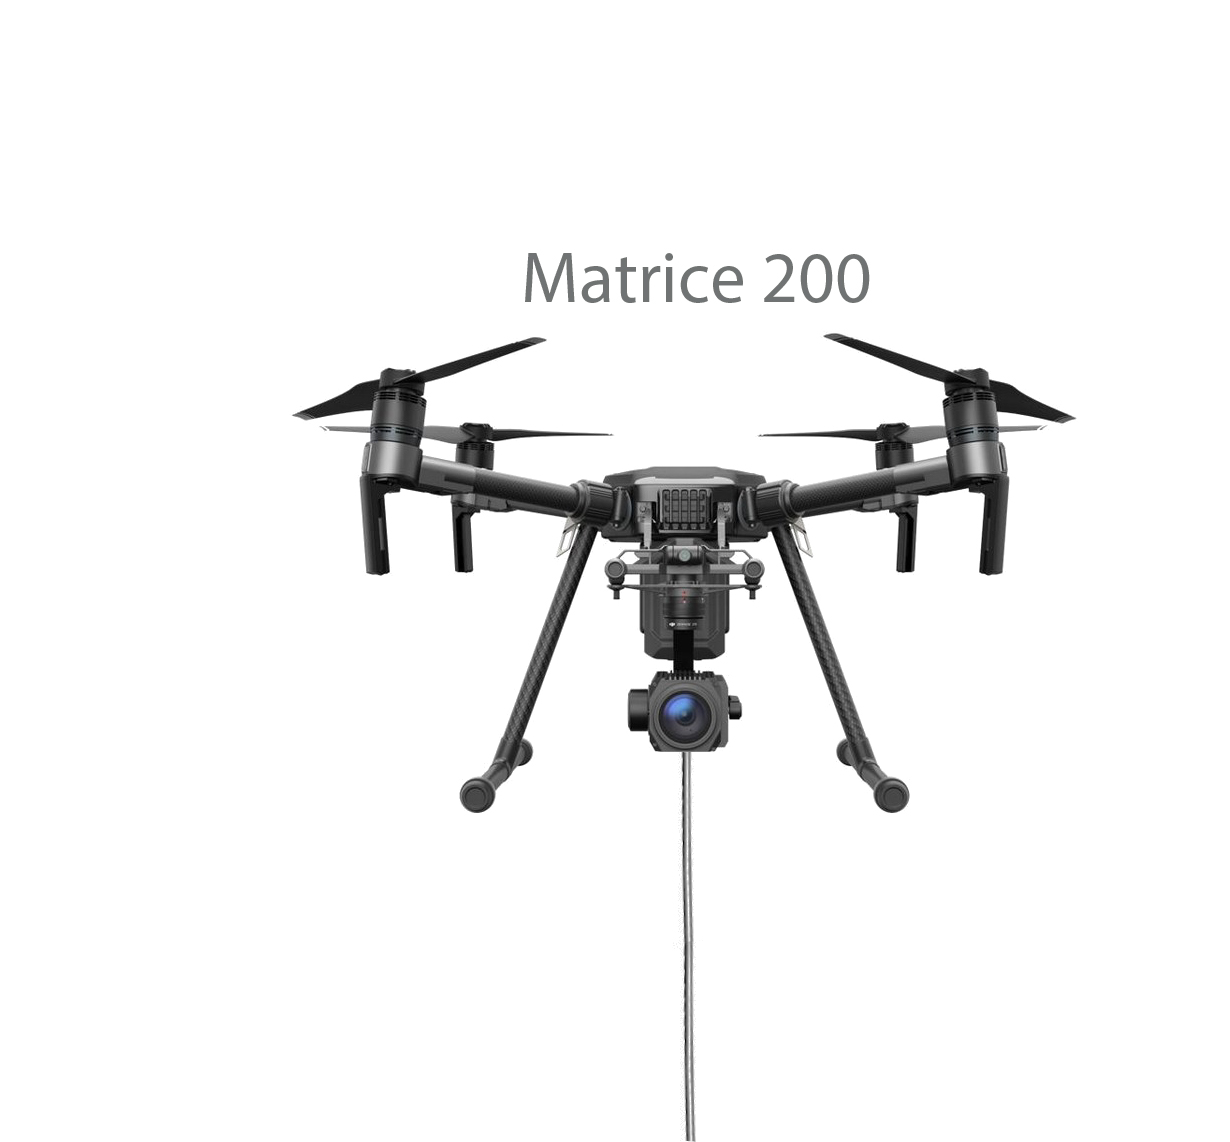 DJI Matrice 200 is compatible with the Ligh-T V.3 tethered Drone Station